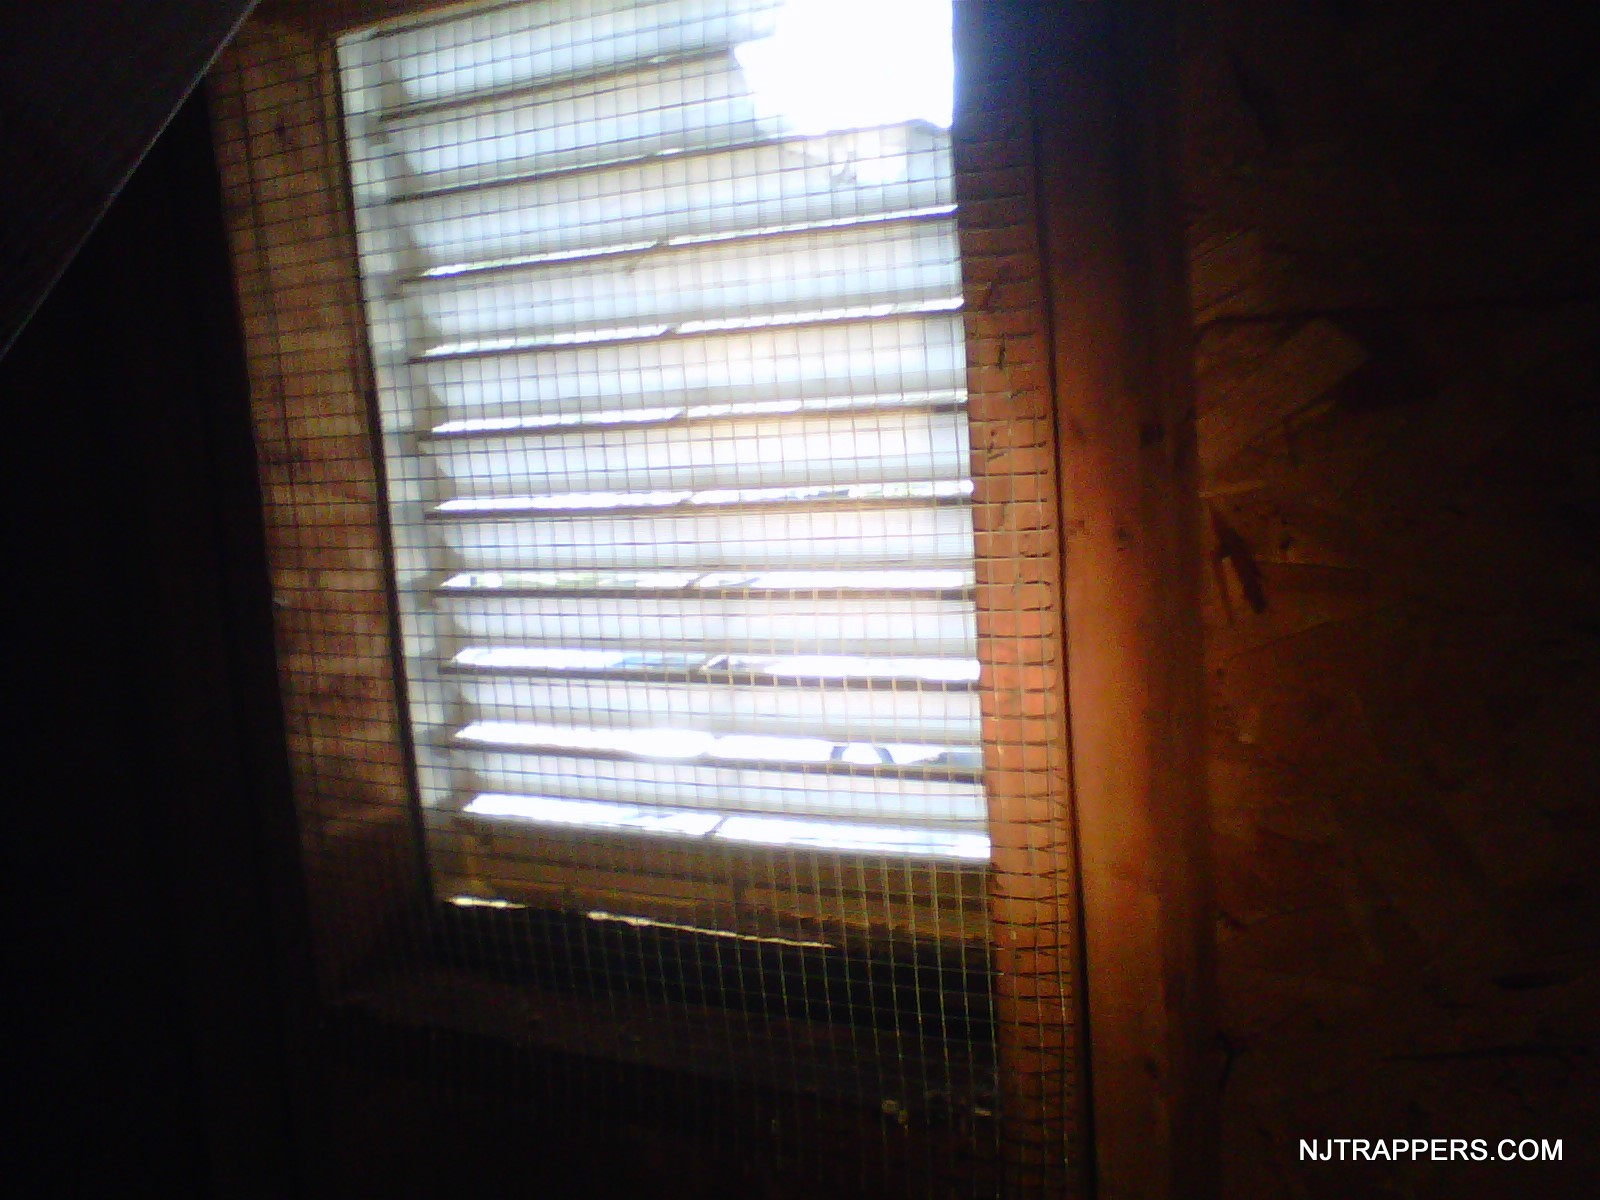 Nj Trappers Attic And Gable Vent Screens inside dimensions 1600 X 1200